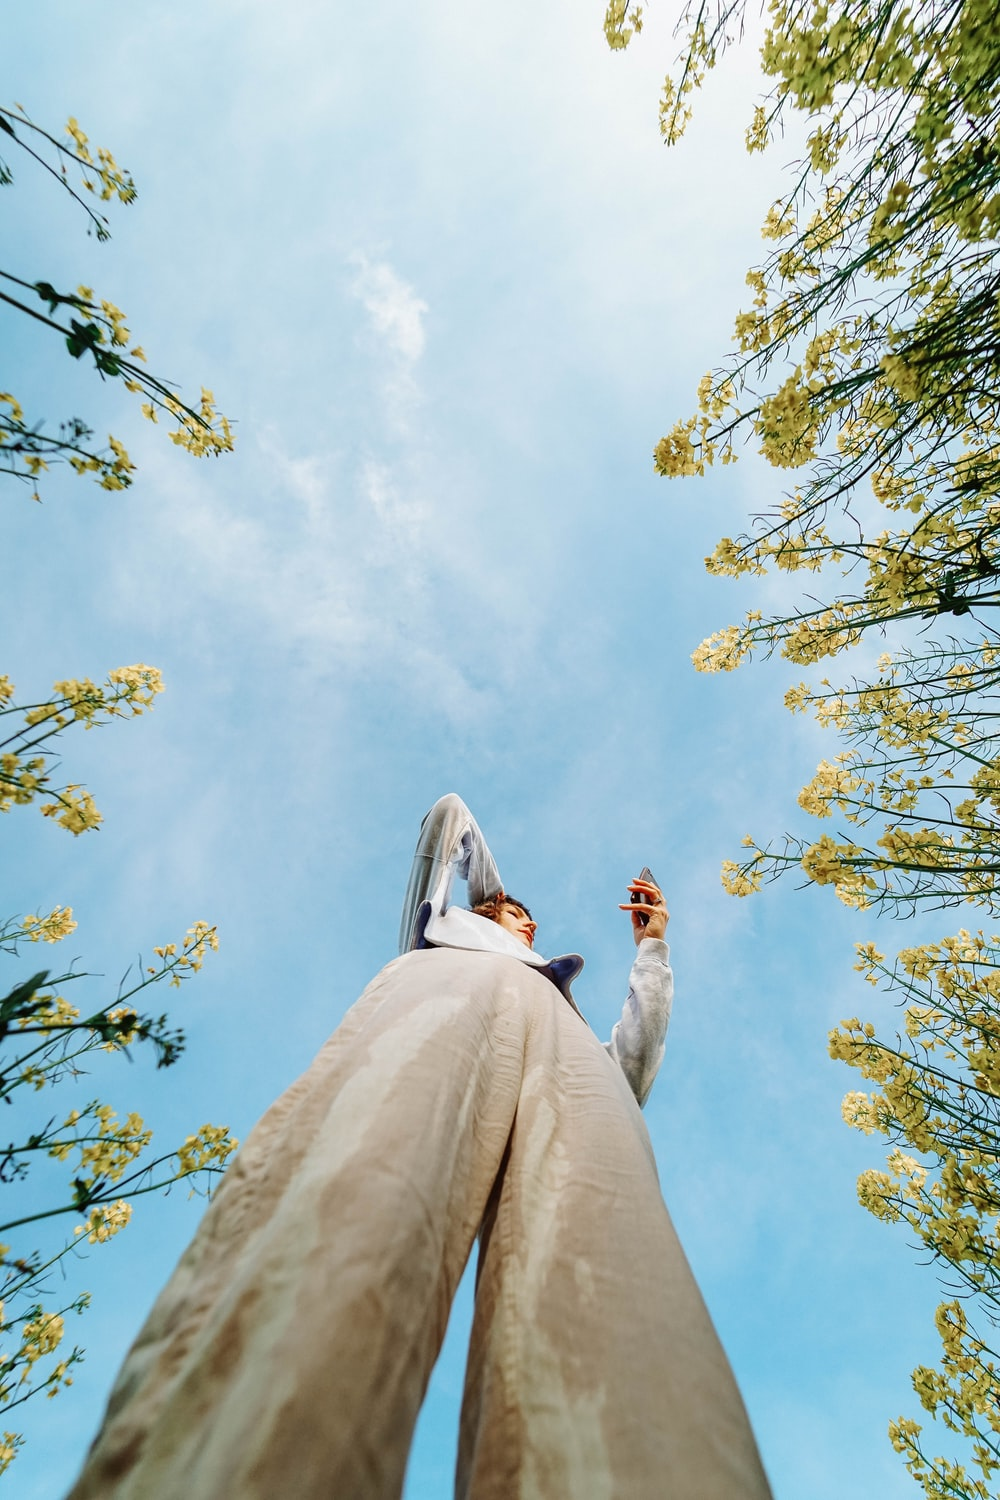 low angle photography of woman in white dress standing under green tree during daytime